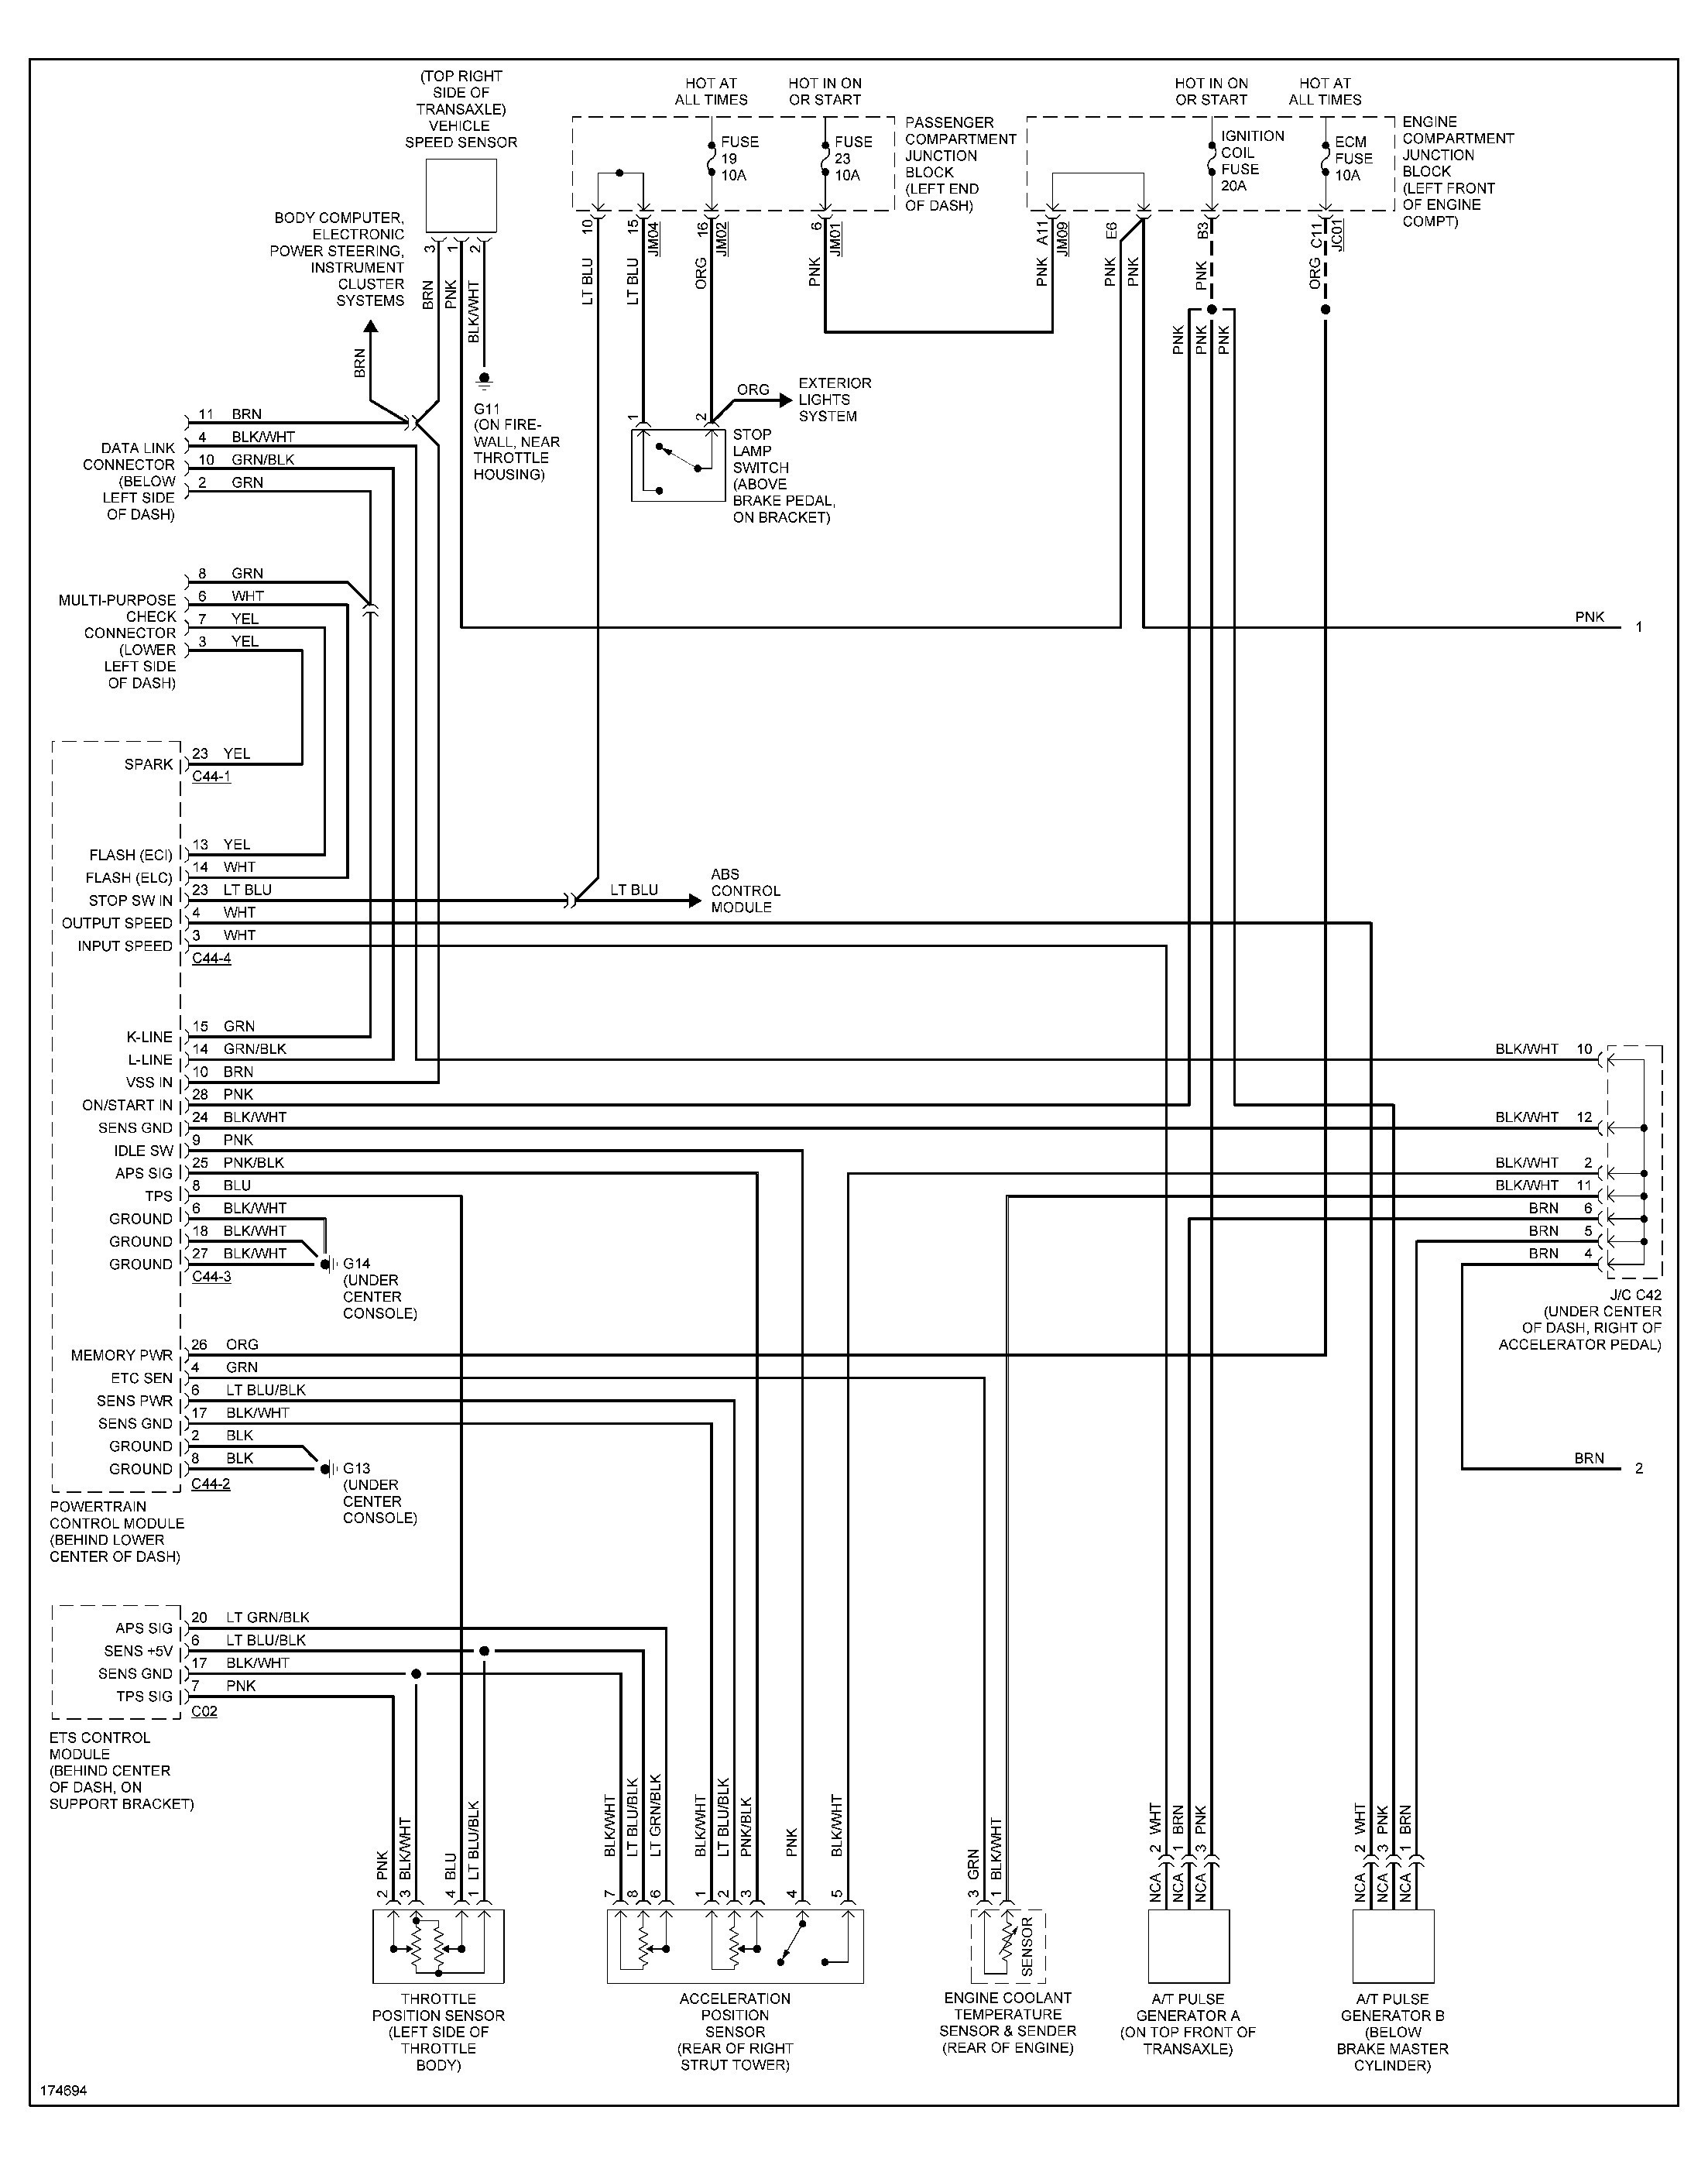 2005 Hyundai Santa Fe Wire Diagram - Wiring Diagram Server shop-speed -  shop-speed.ristoranteitredenari.it | 2005 Hyundai Santa Fe Wire Diagram |  | Ristorante I Tre Denari Manerbio